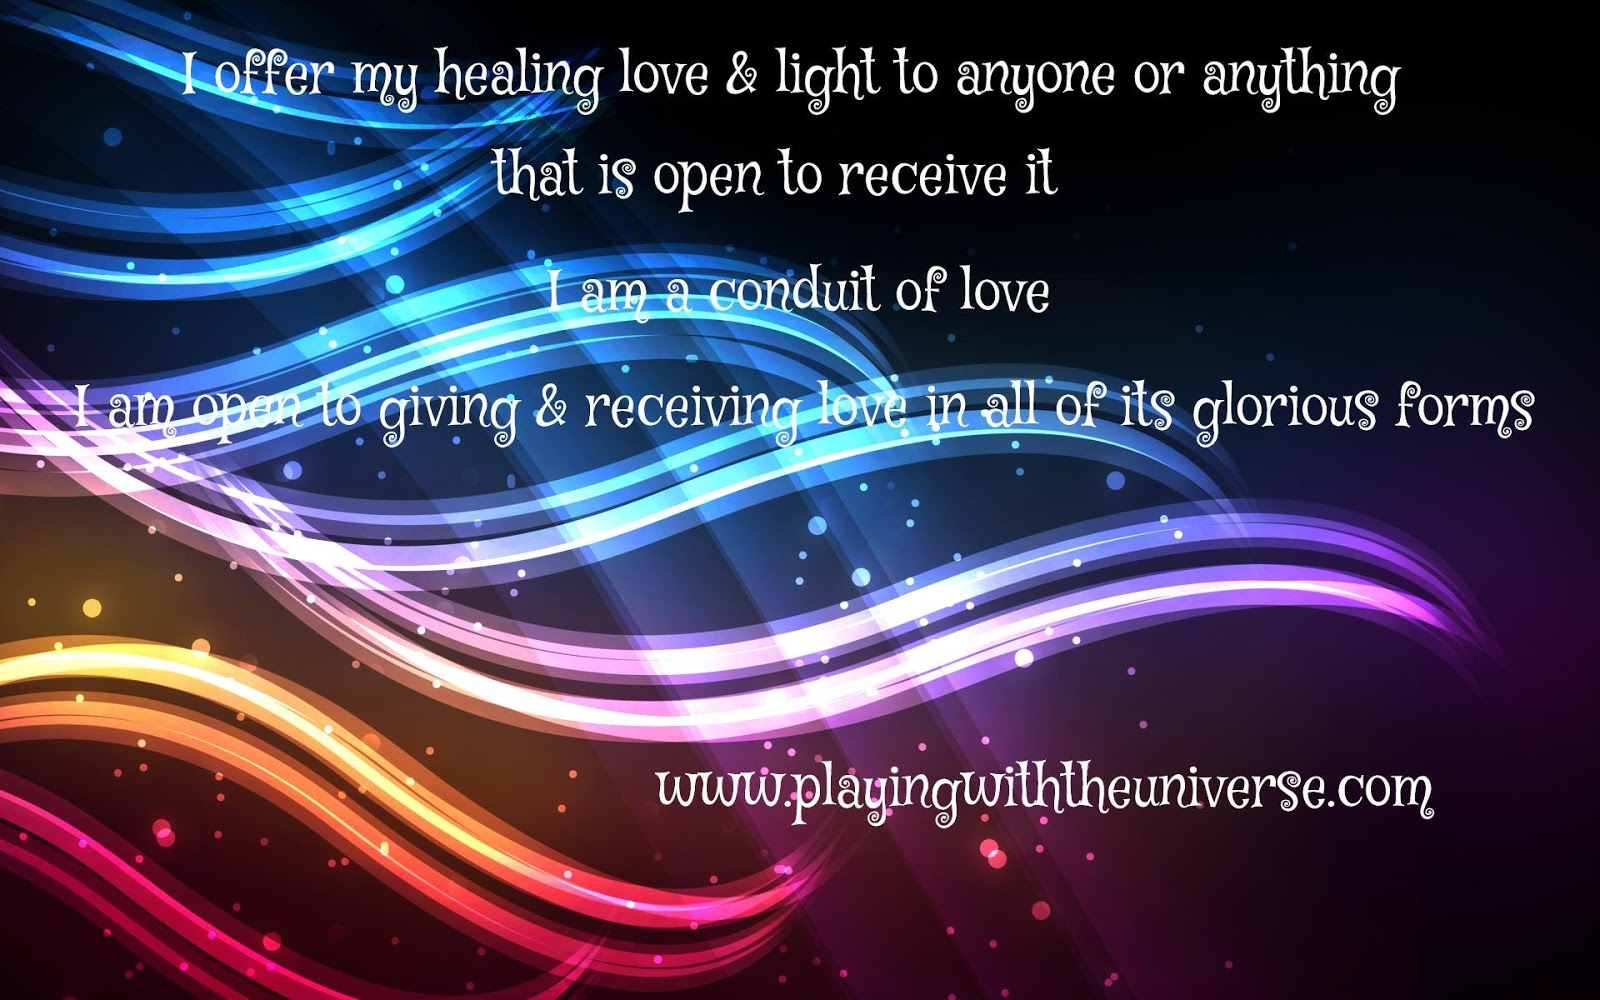 Healing energy images wallpaper